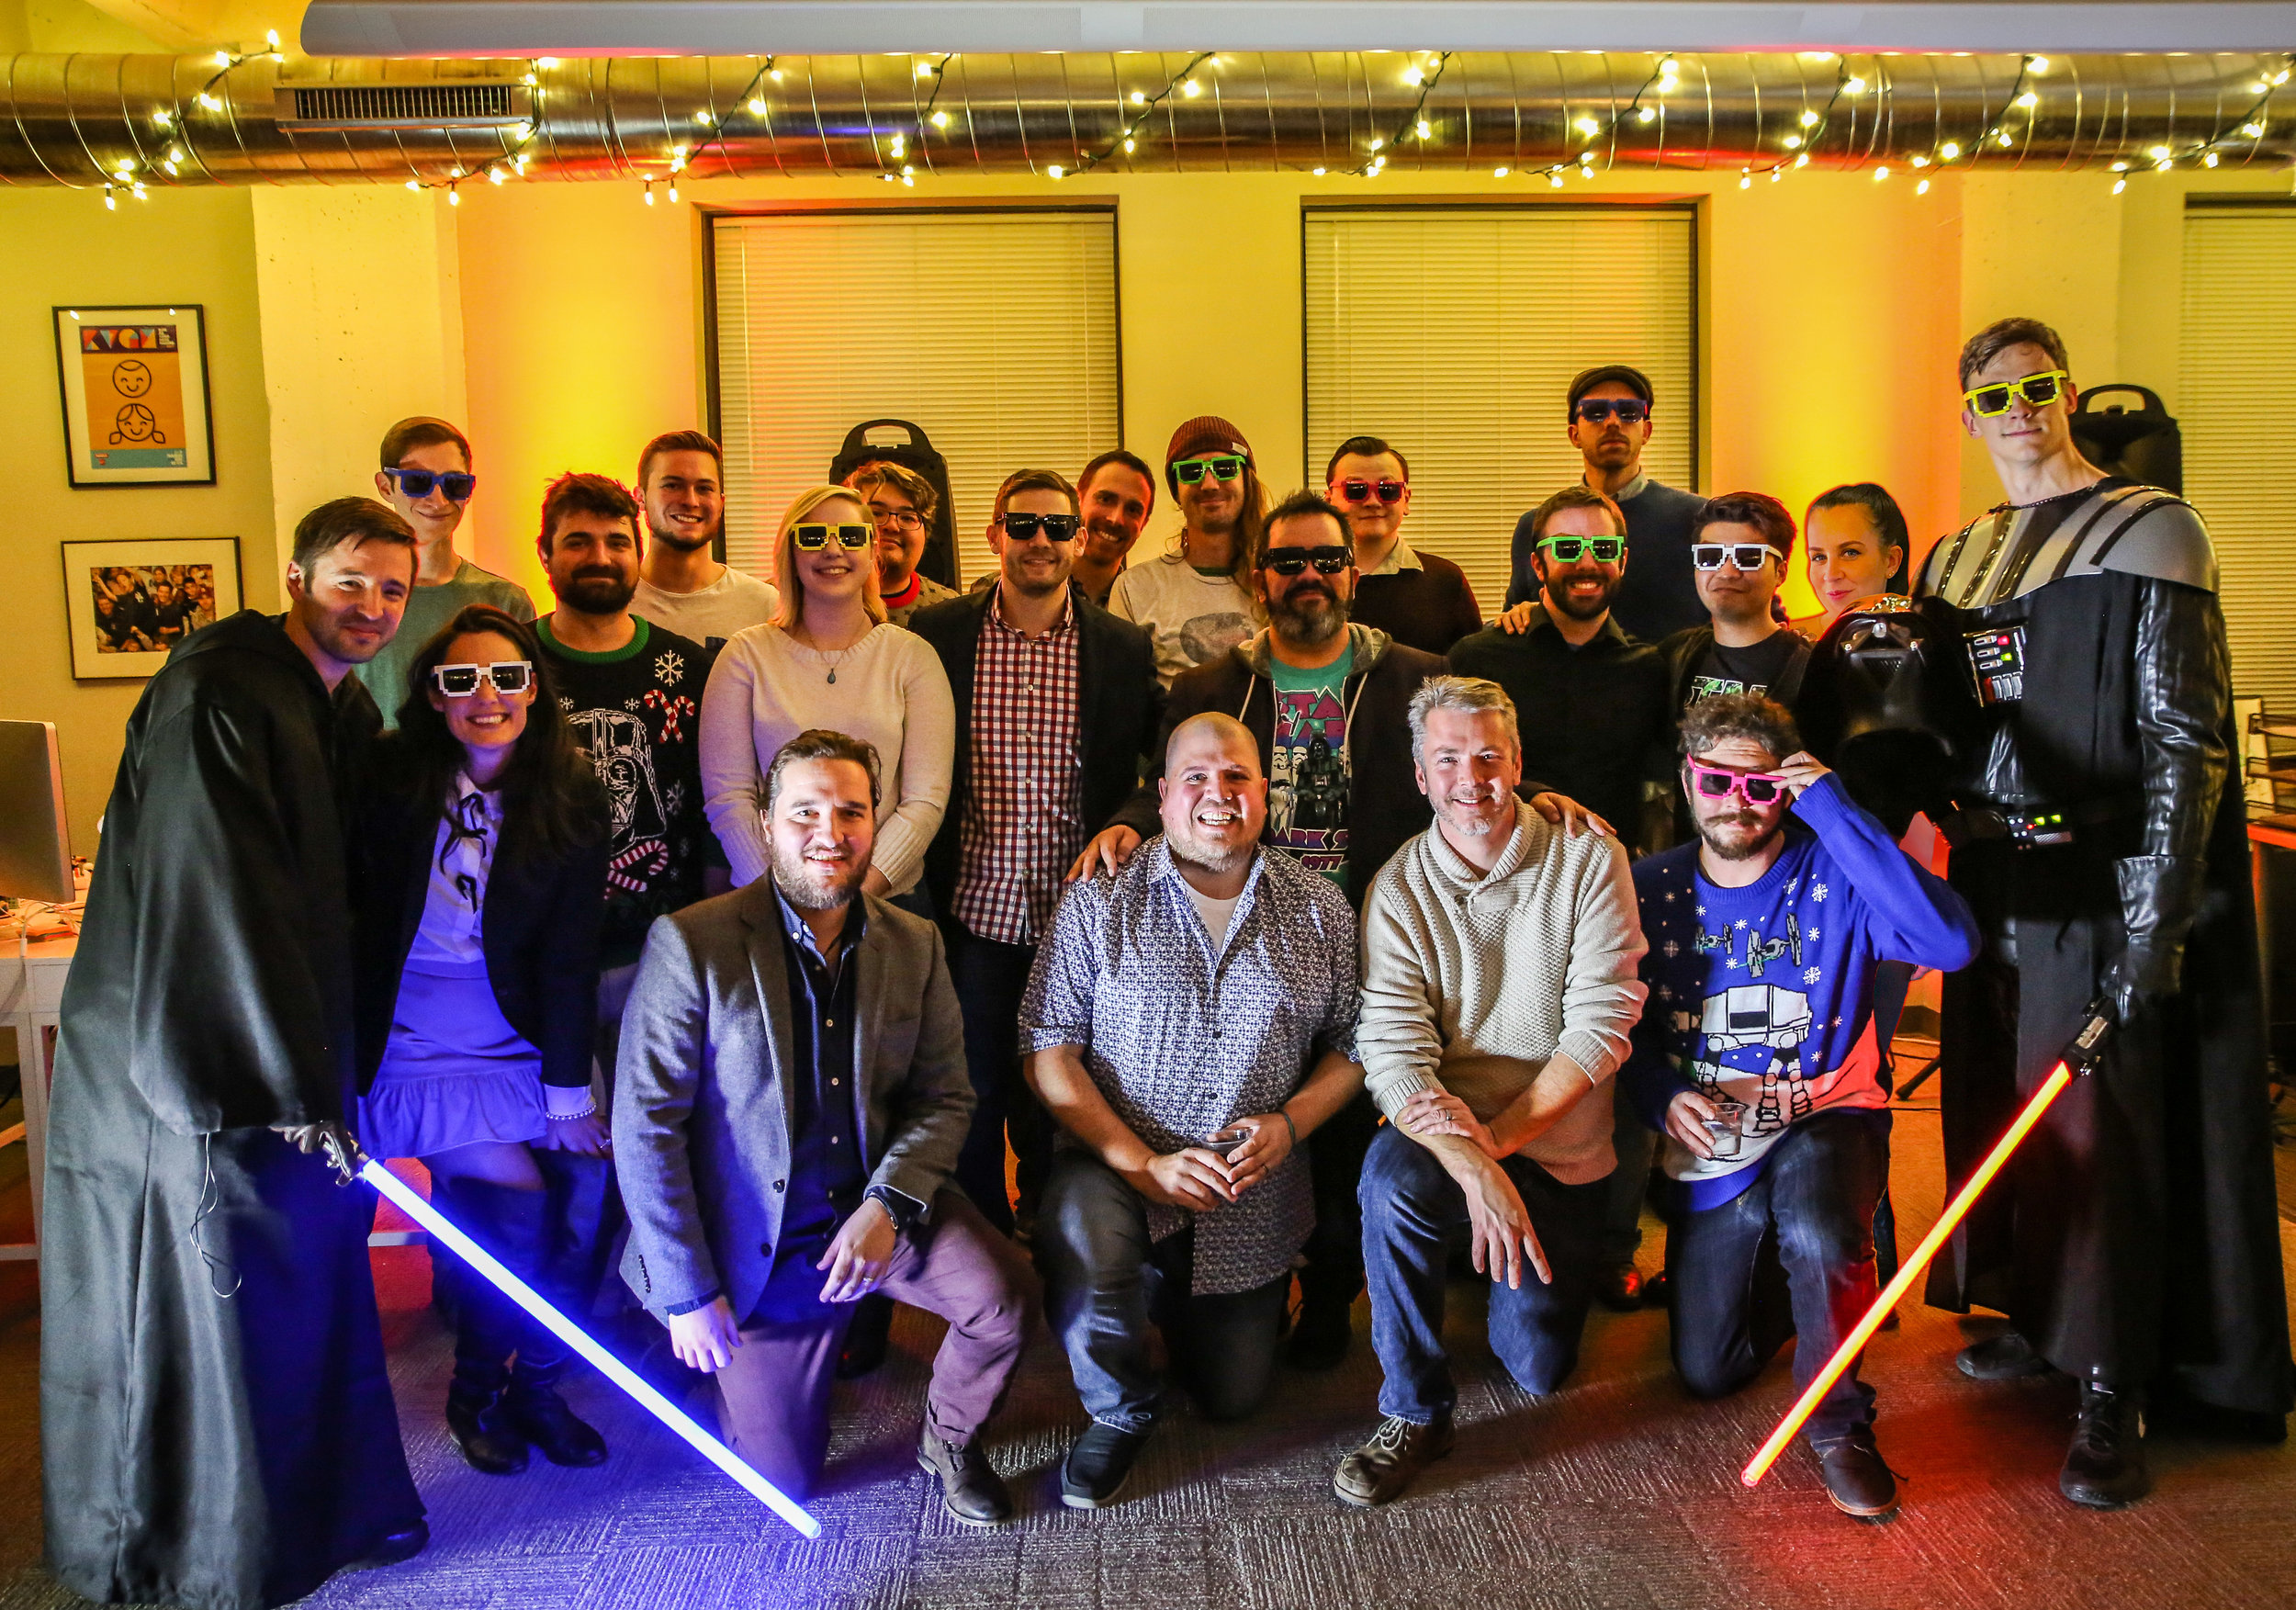 The Pixel Press team at the Bloxels Star Wars Launch Party. Can you tell who is photoshopped in?